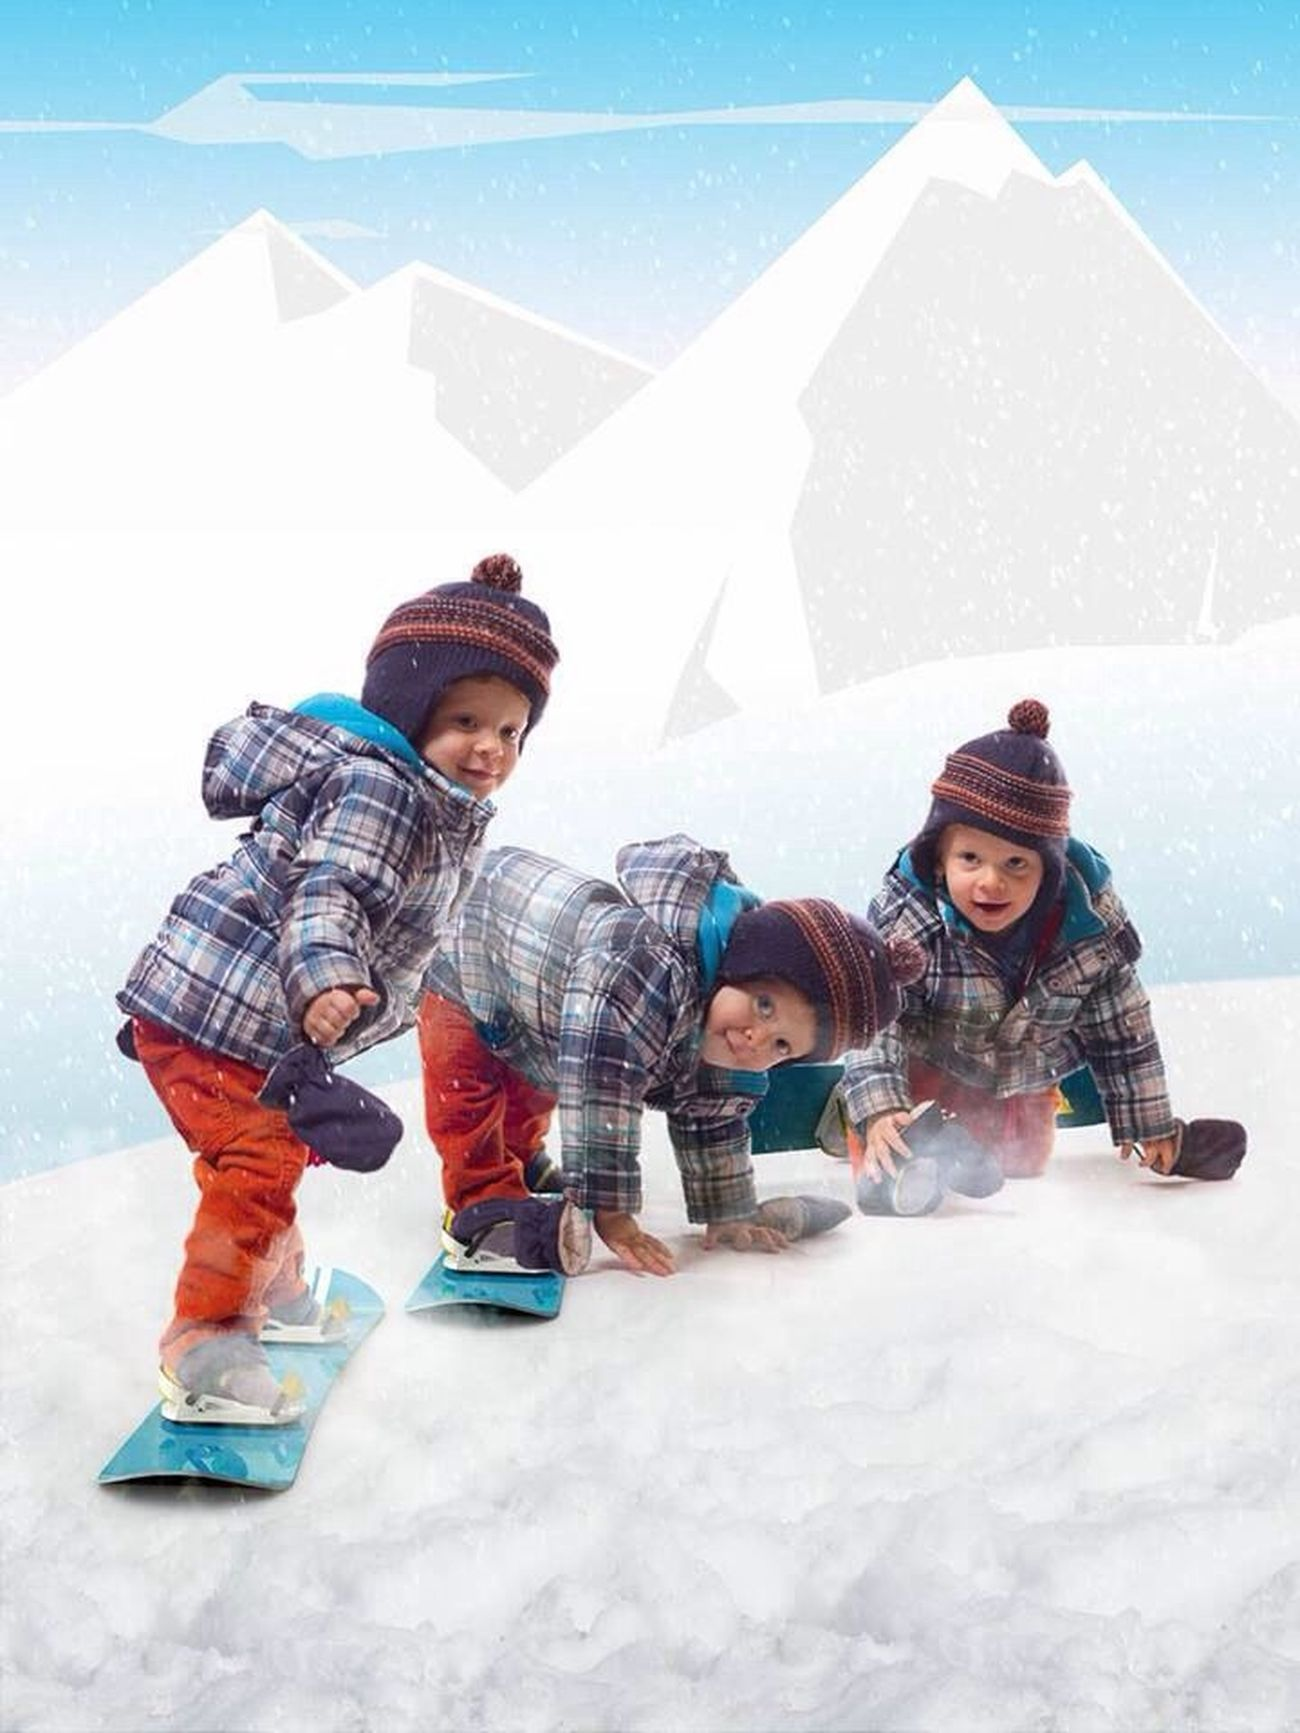 Let's go to the Snowpark / Snowboarding Kids CGI